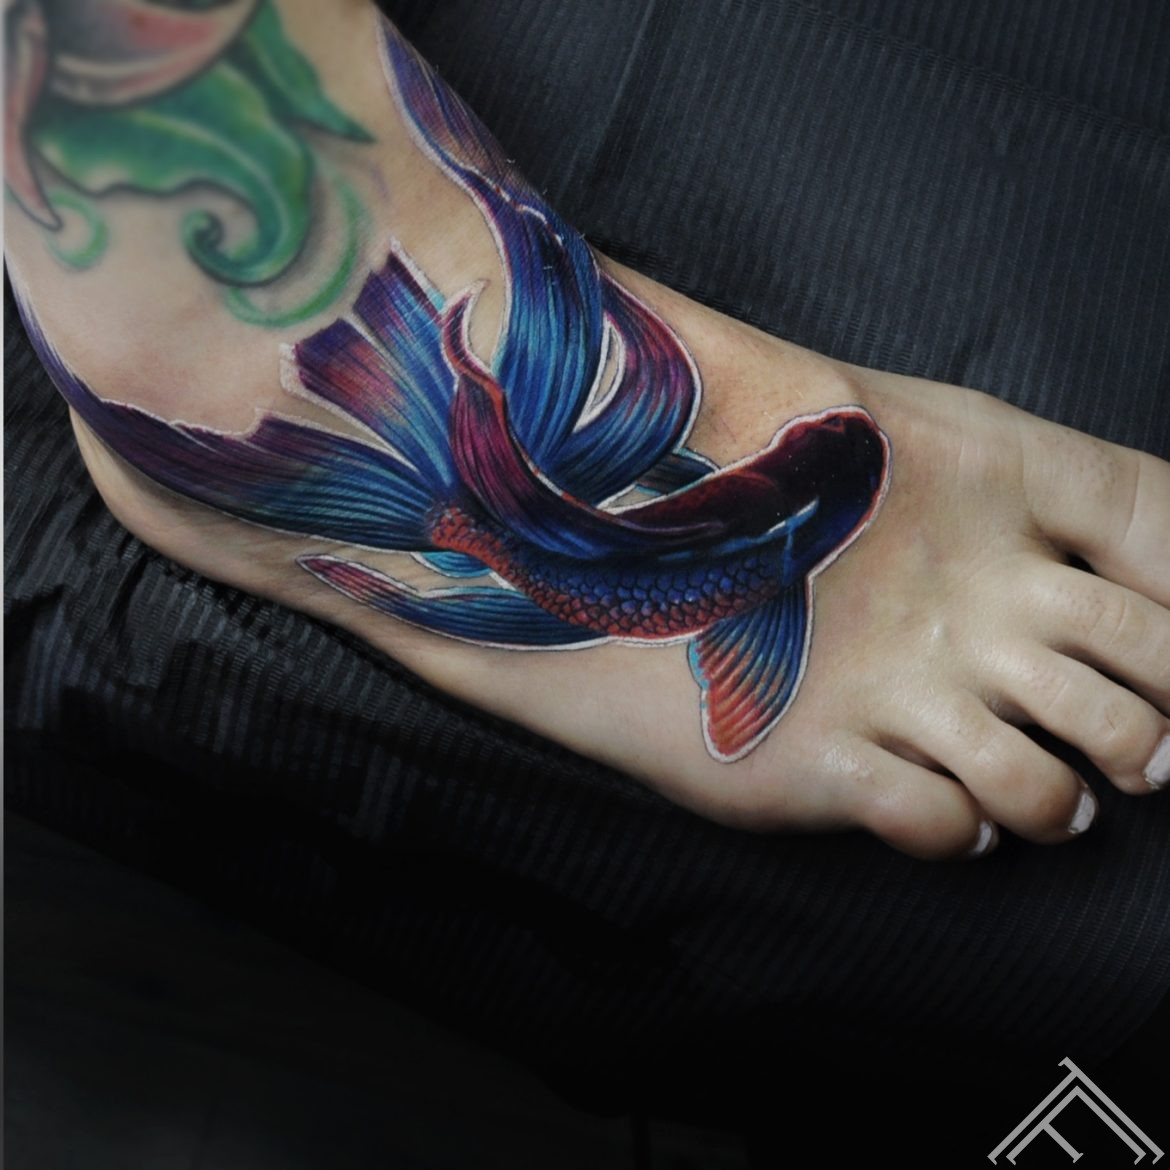 siamese-fighting- fish-zivs-tattoo-tattoofrequency2